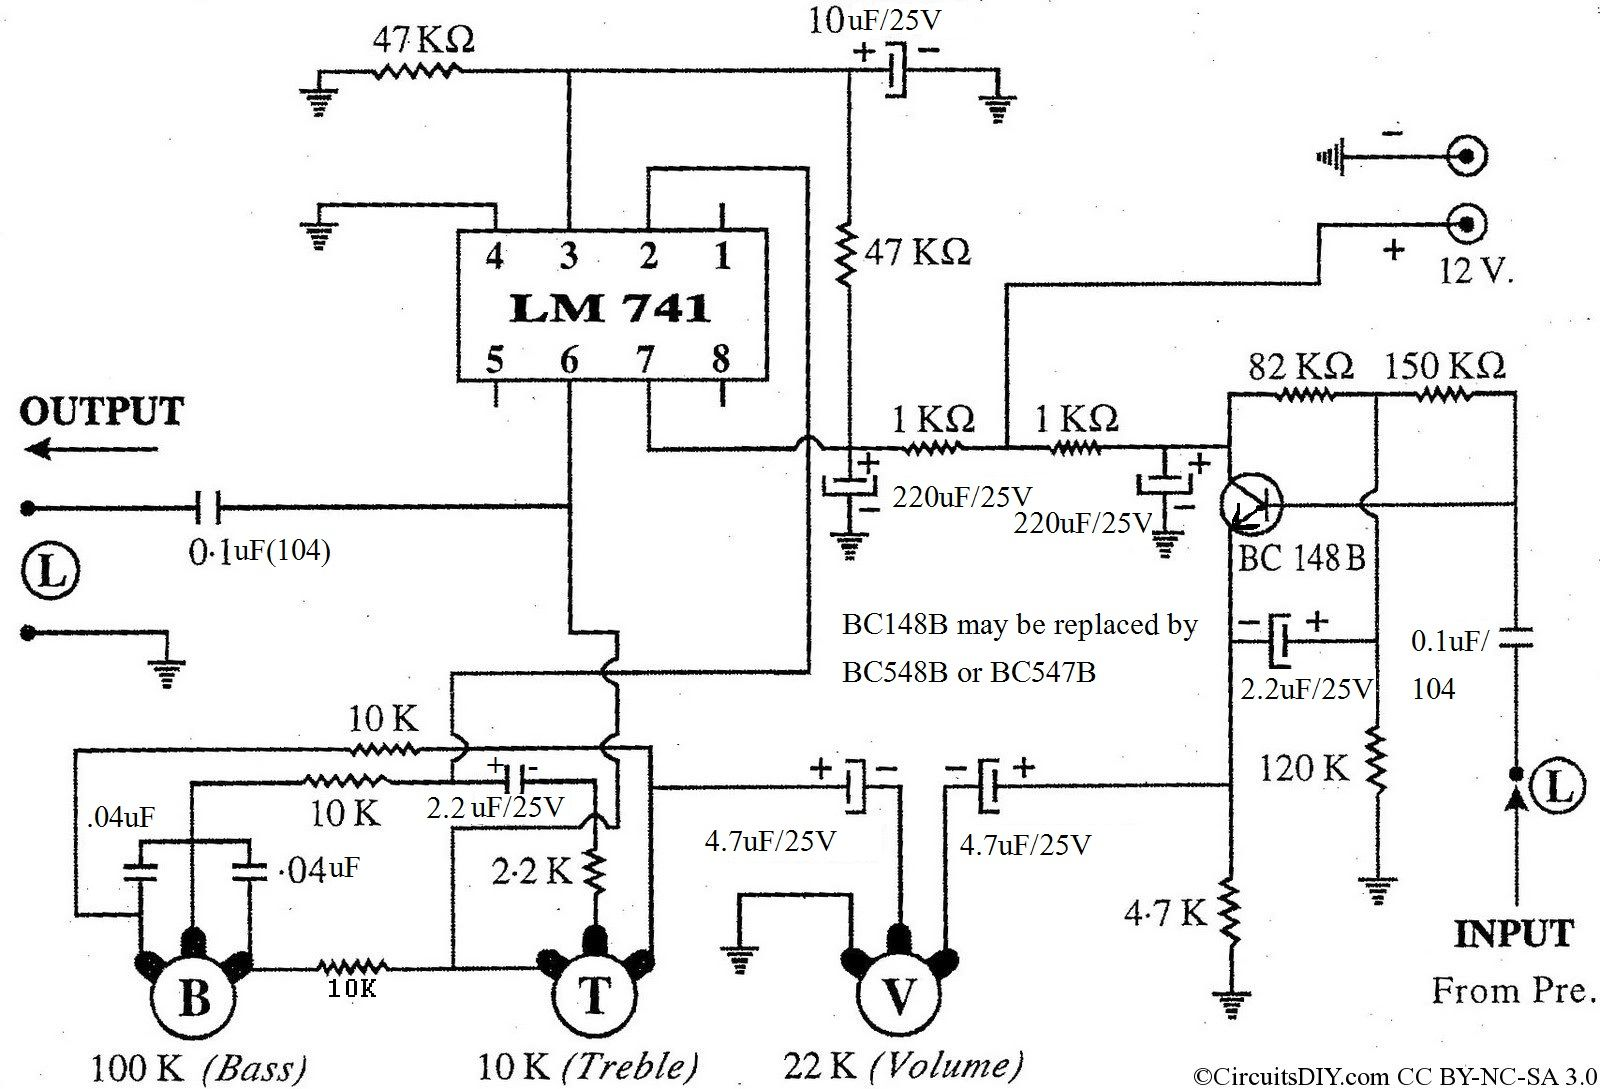 small resolution of a large online repository or library of guitar pedal schematics layouts pcb transfers and tagboard layouts all rights reserved to respective owner s